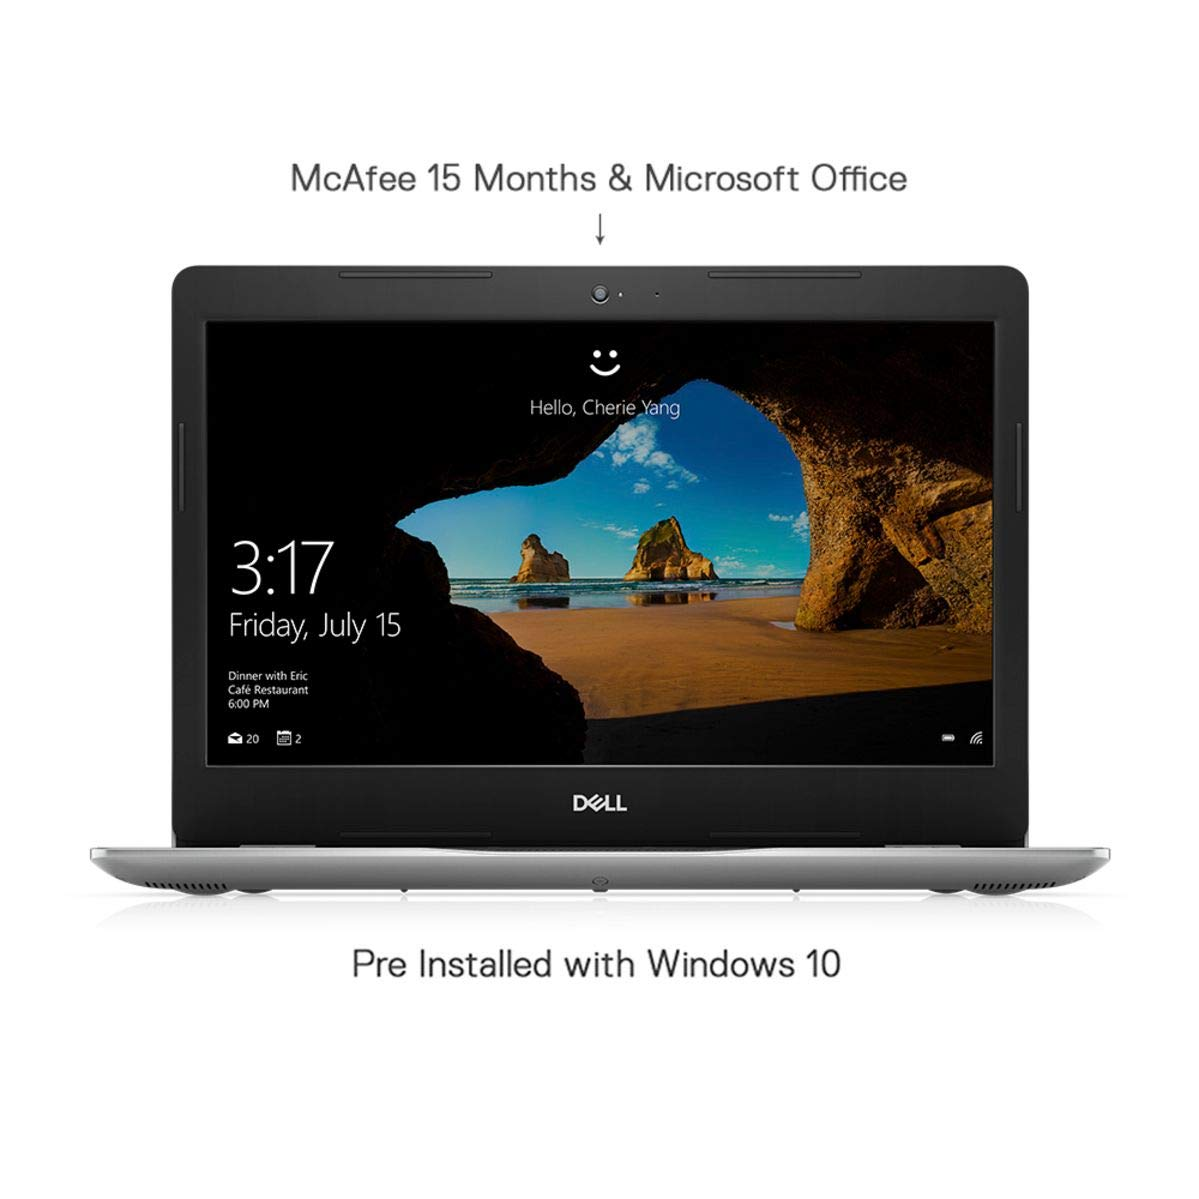 Dell Inspiron 3493 14-inch HD Laptop (10th Gen i3-1005G1/4GB/1TB HDD/Win 10 + MS Office/Intel HD Graphics/Silver) D560193WIN9SE - EMI Start at